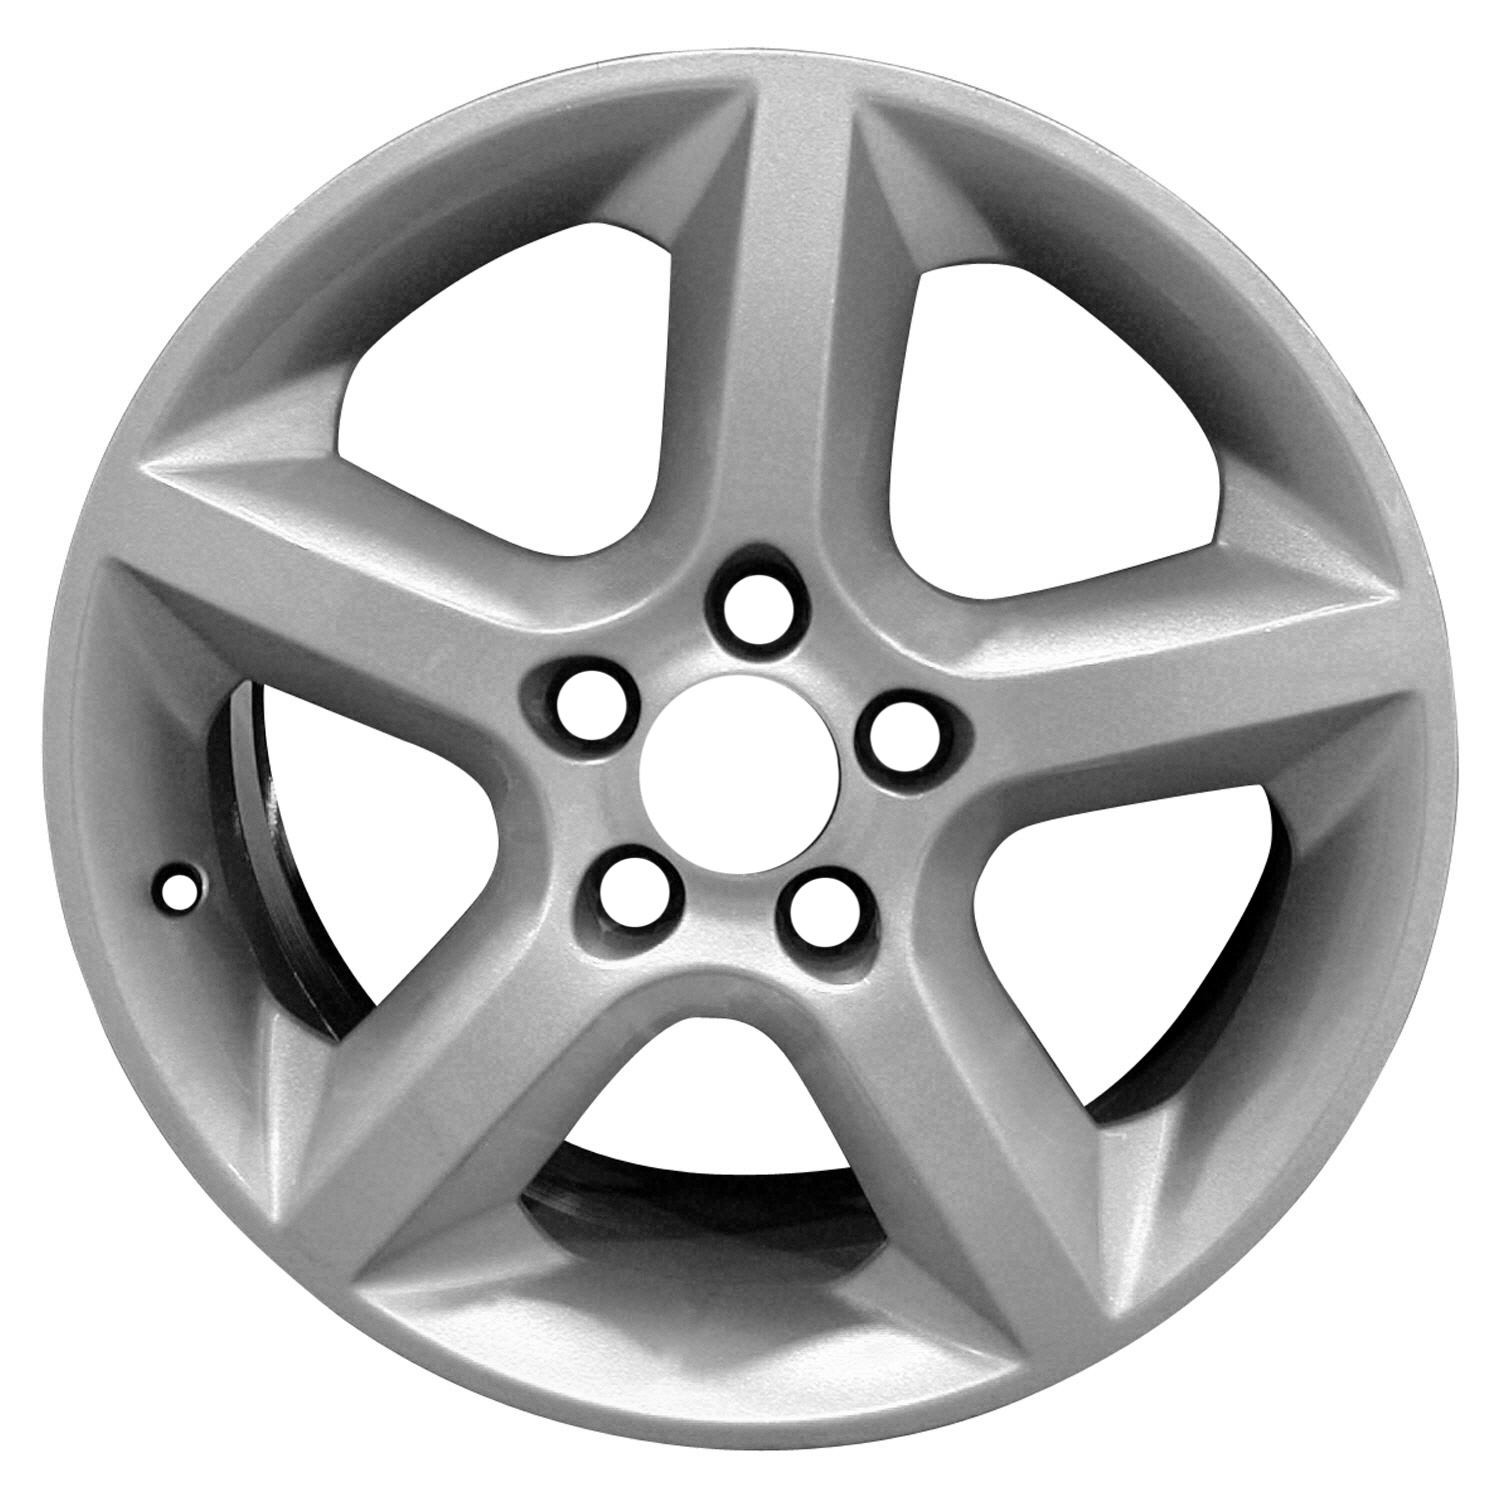 oem reman 17x7 aluminum alloy wheel rim sparkle silver full face New Dodge Dually picture 1 of 2